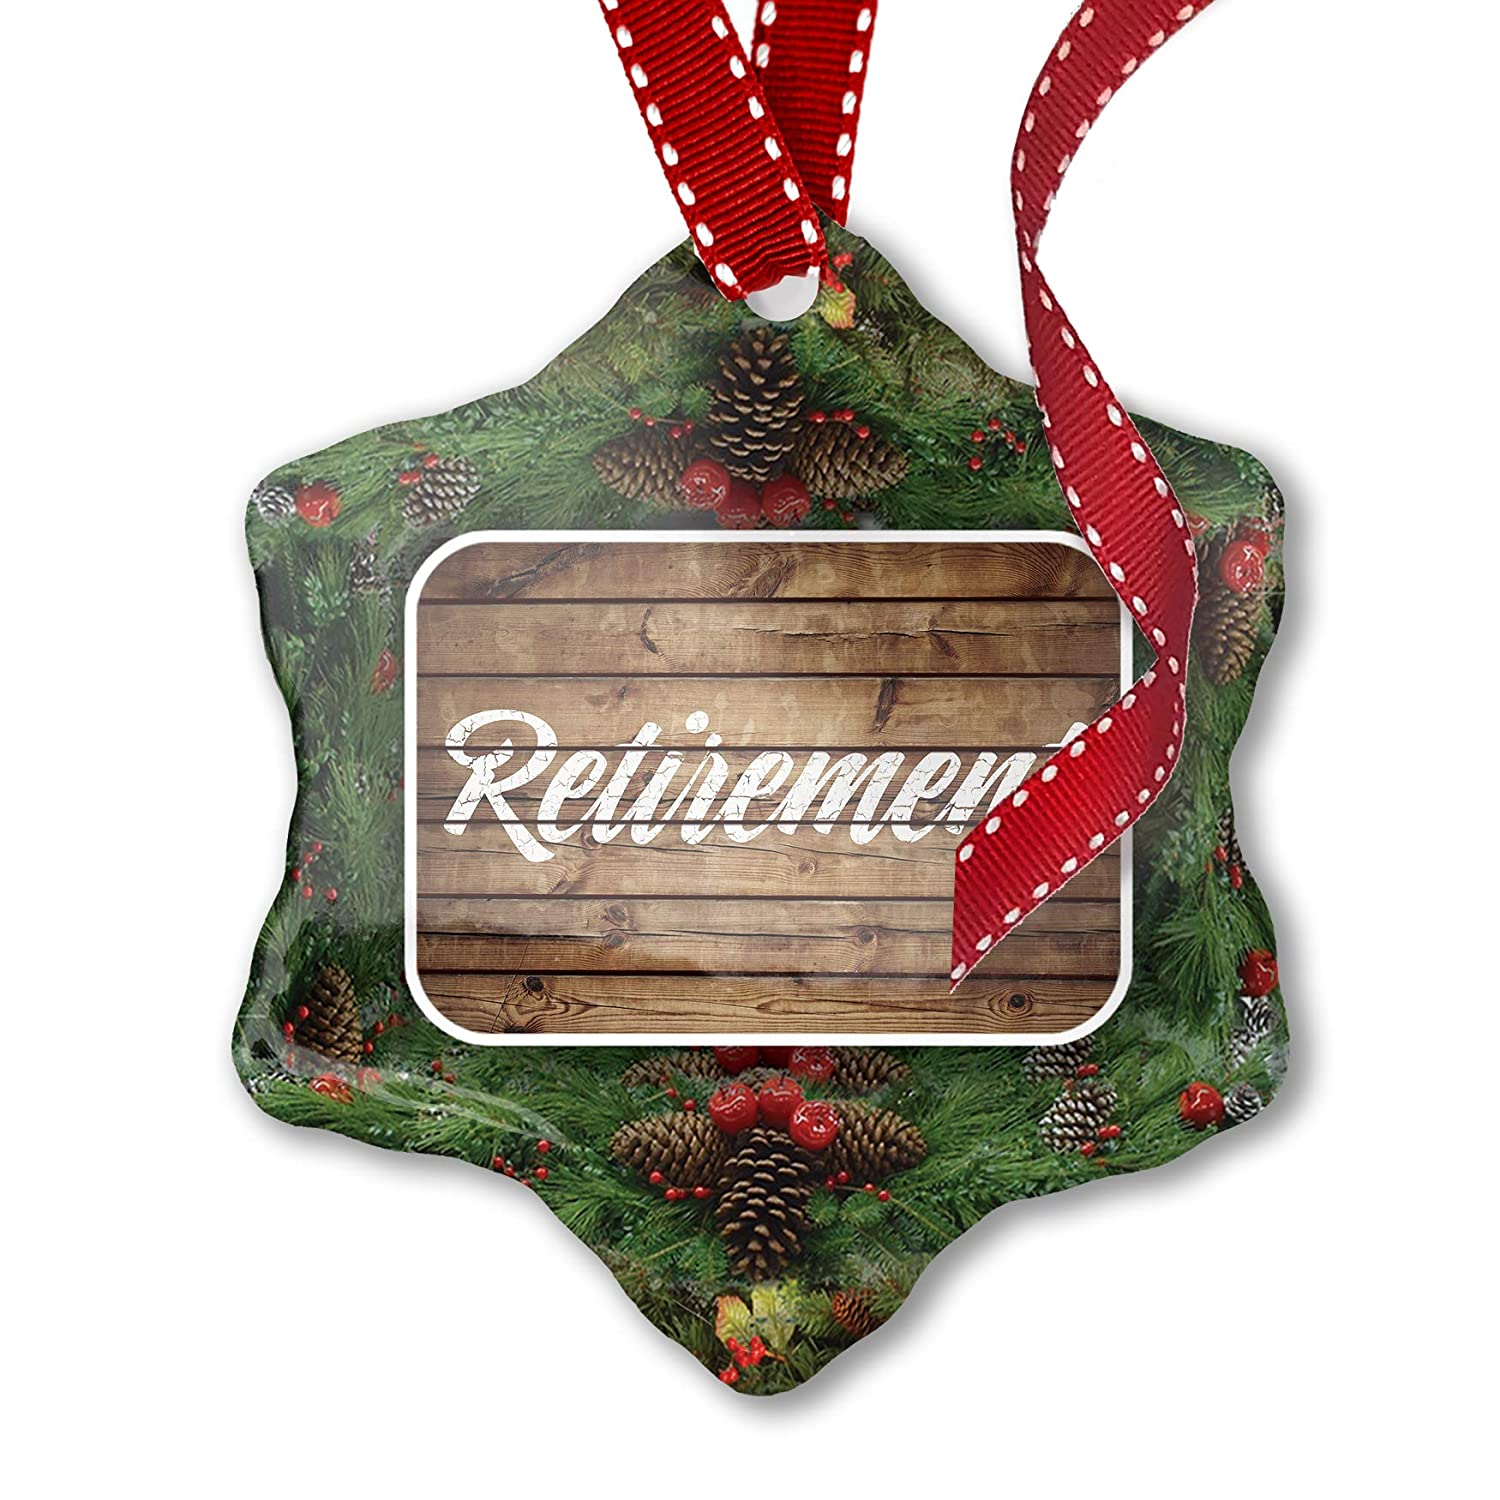 Neonblond Painted Wood Retirement Metal License Plate